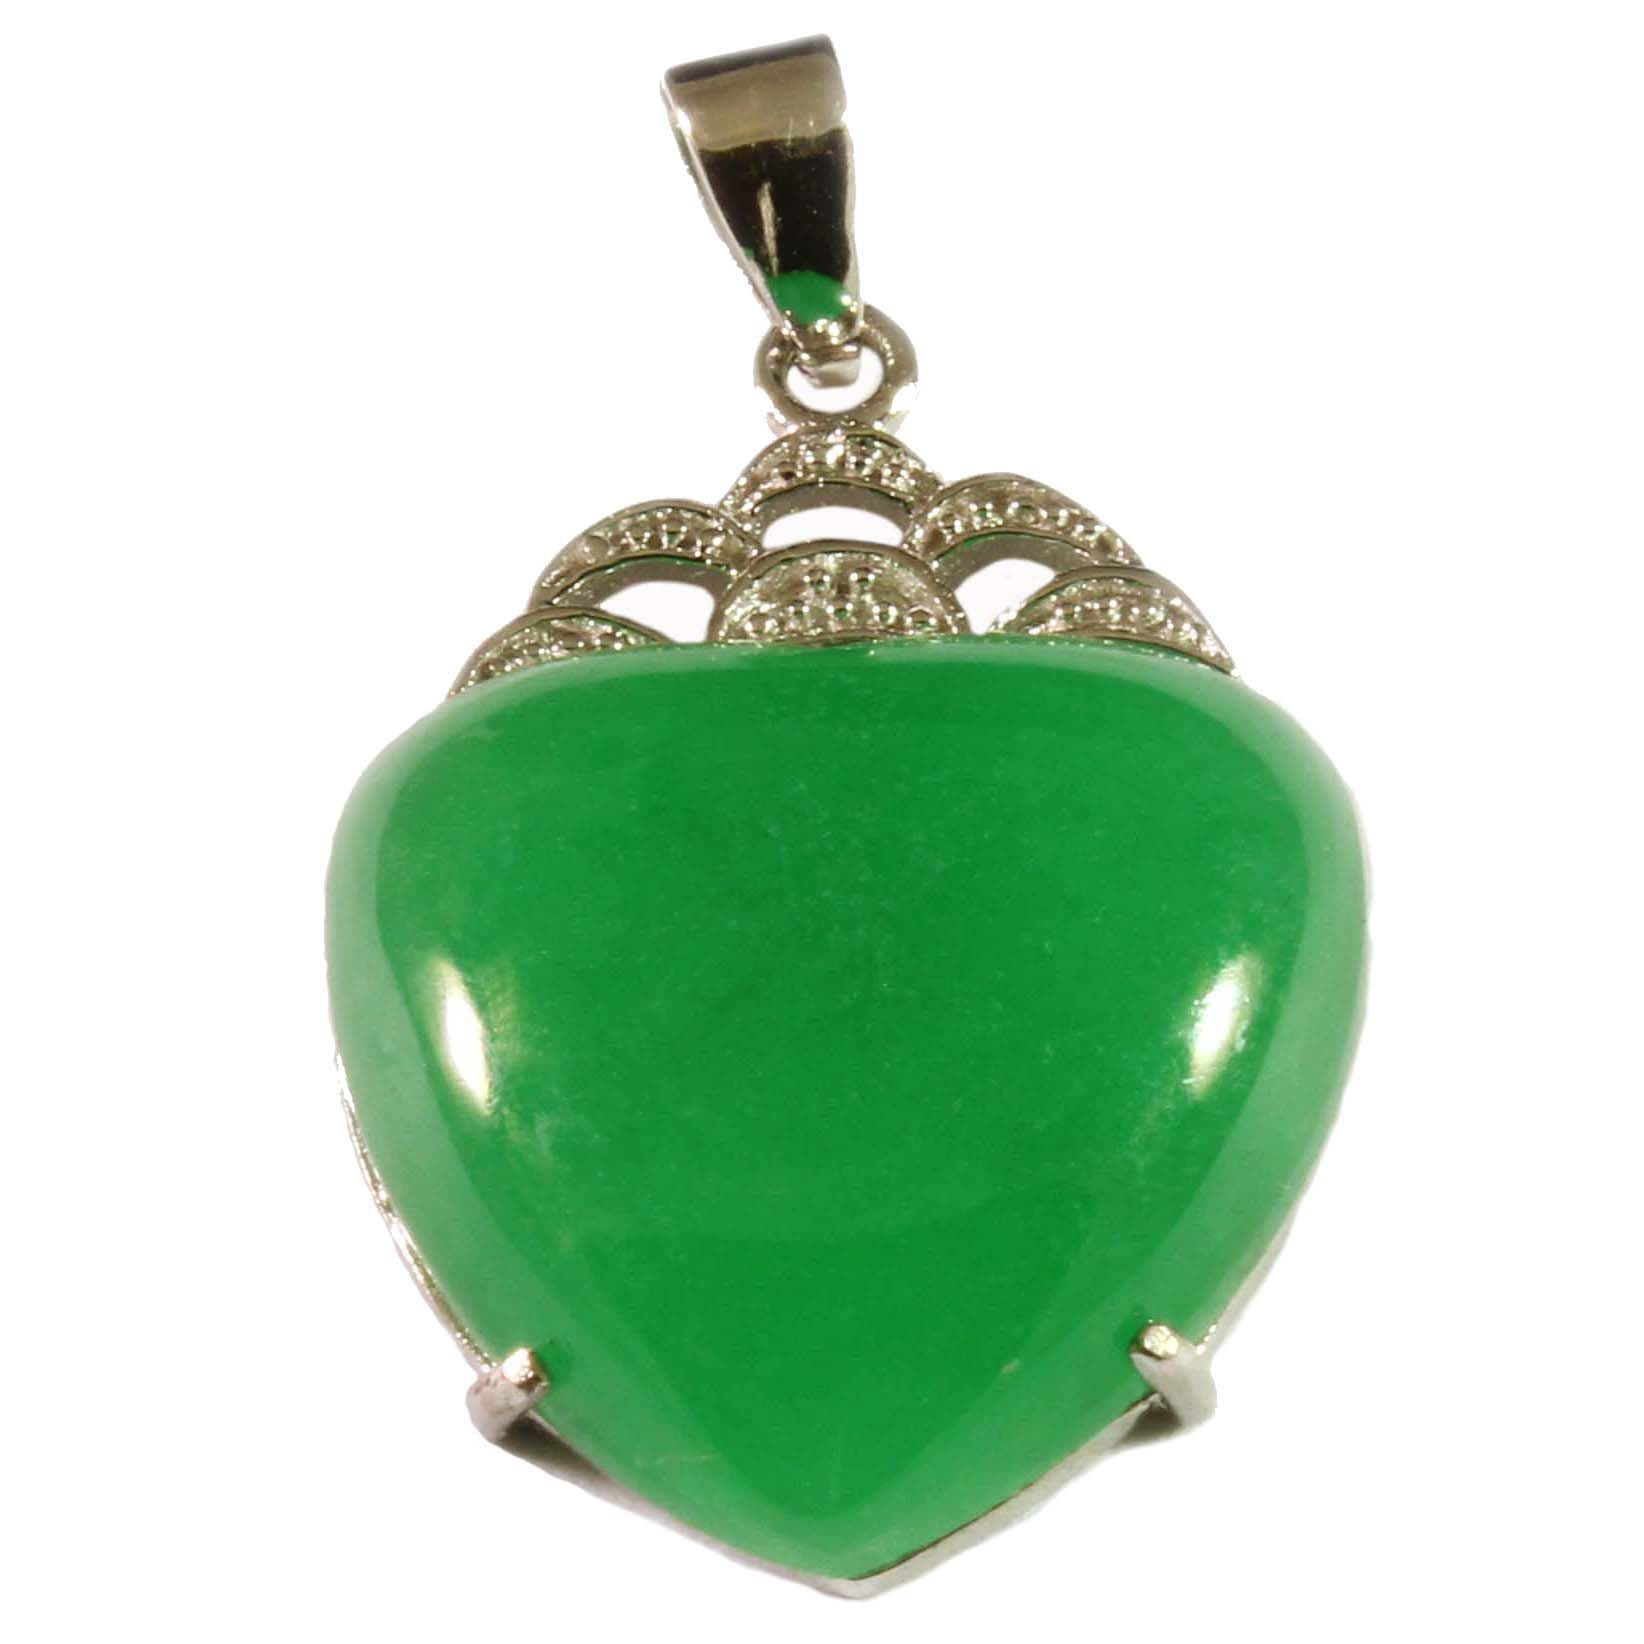 Charm school uk sterling silver pendants green jade heart green jade sterling silver heart pendant mozeypictures Choice Image